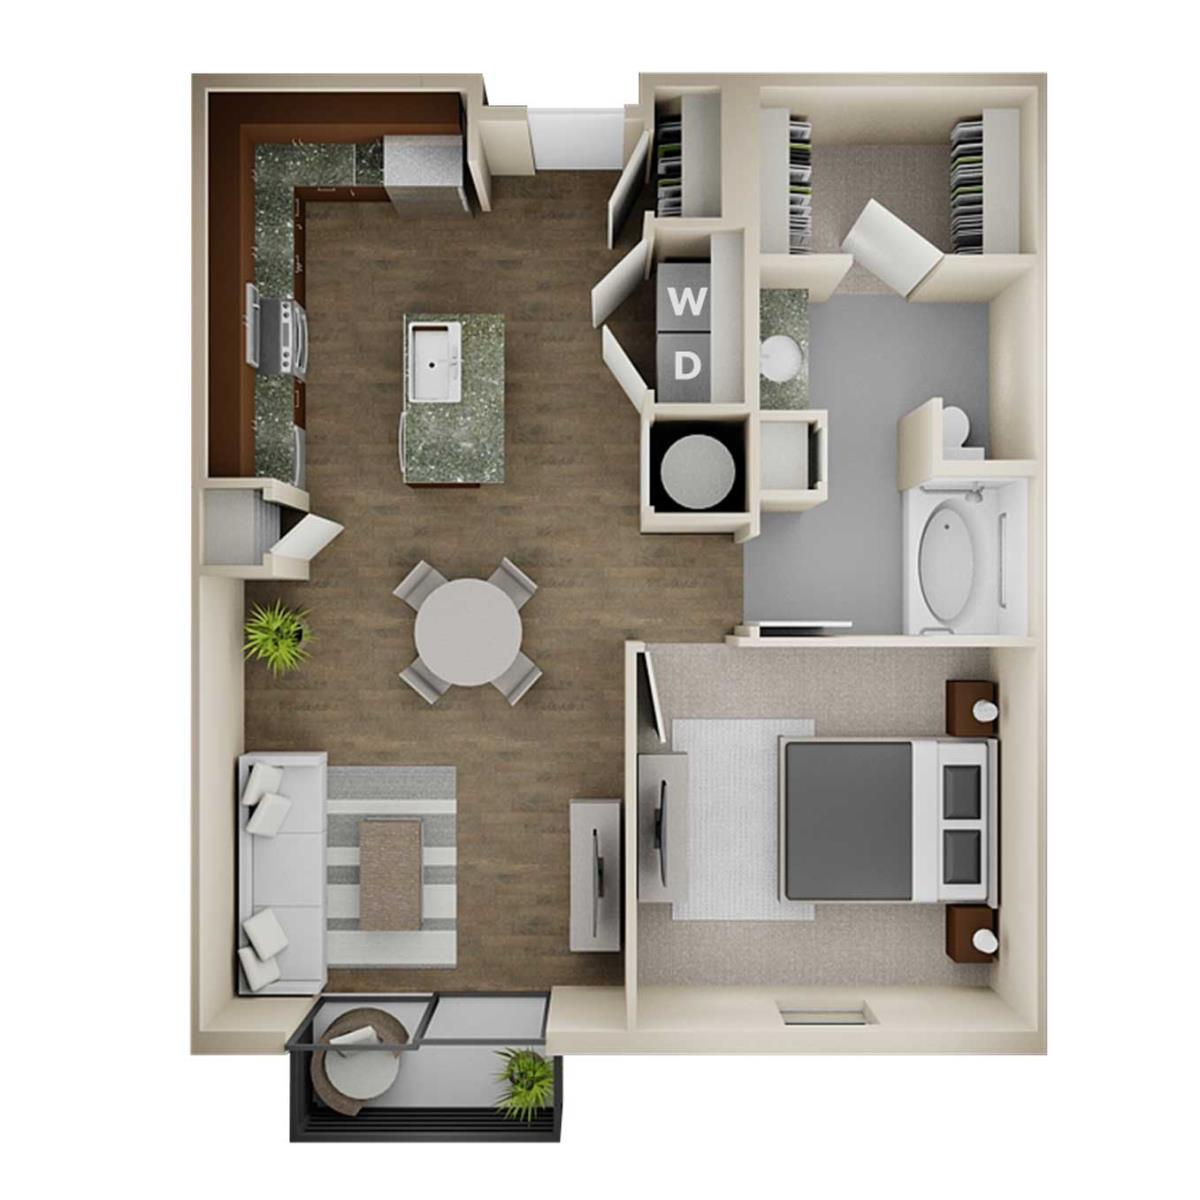 796 sq. ft. 1BA floor plan